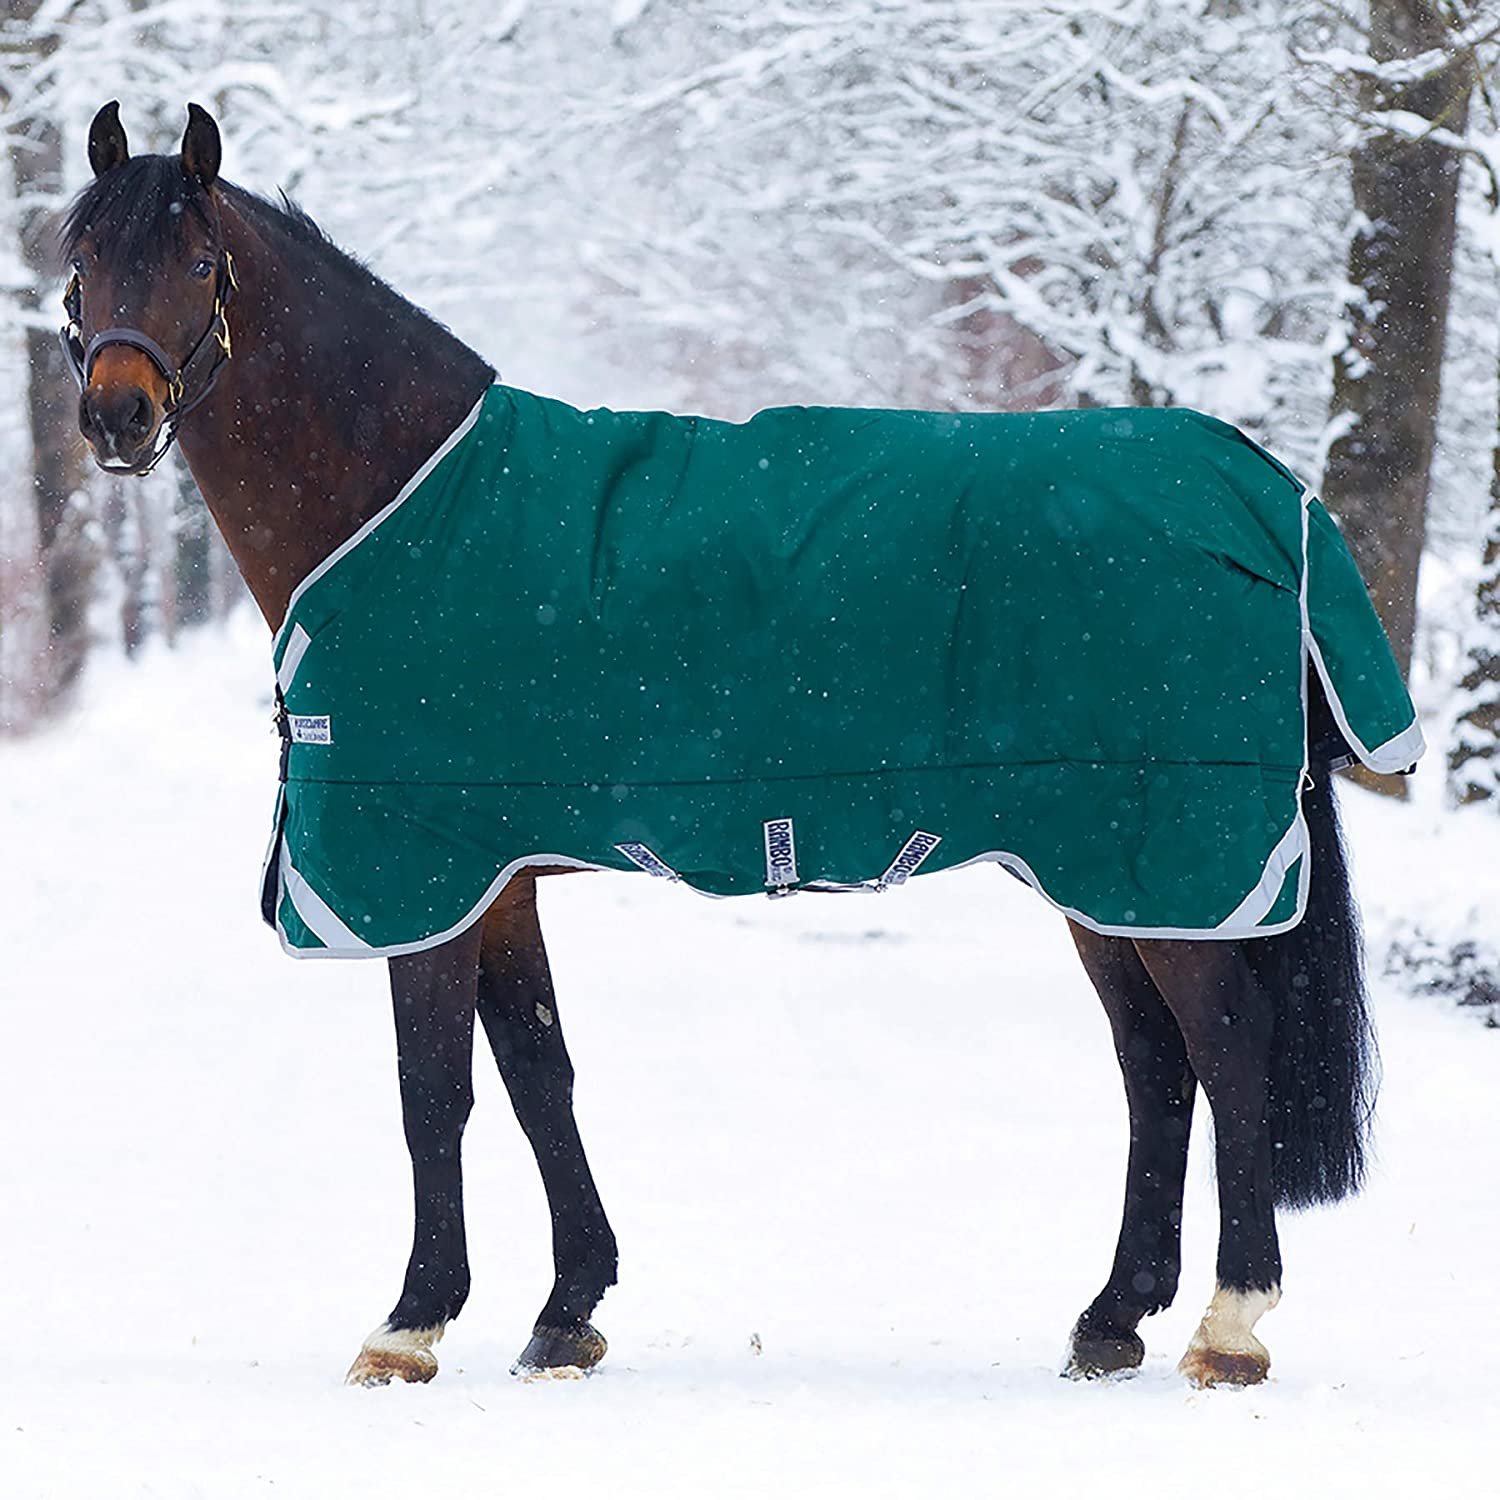 Horseware Ramboo Original Leg Arch 400G Heavyweight Blanket Green//Silver 81